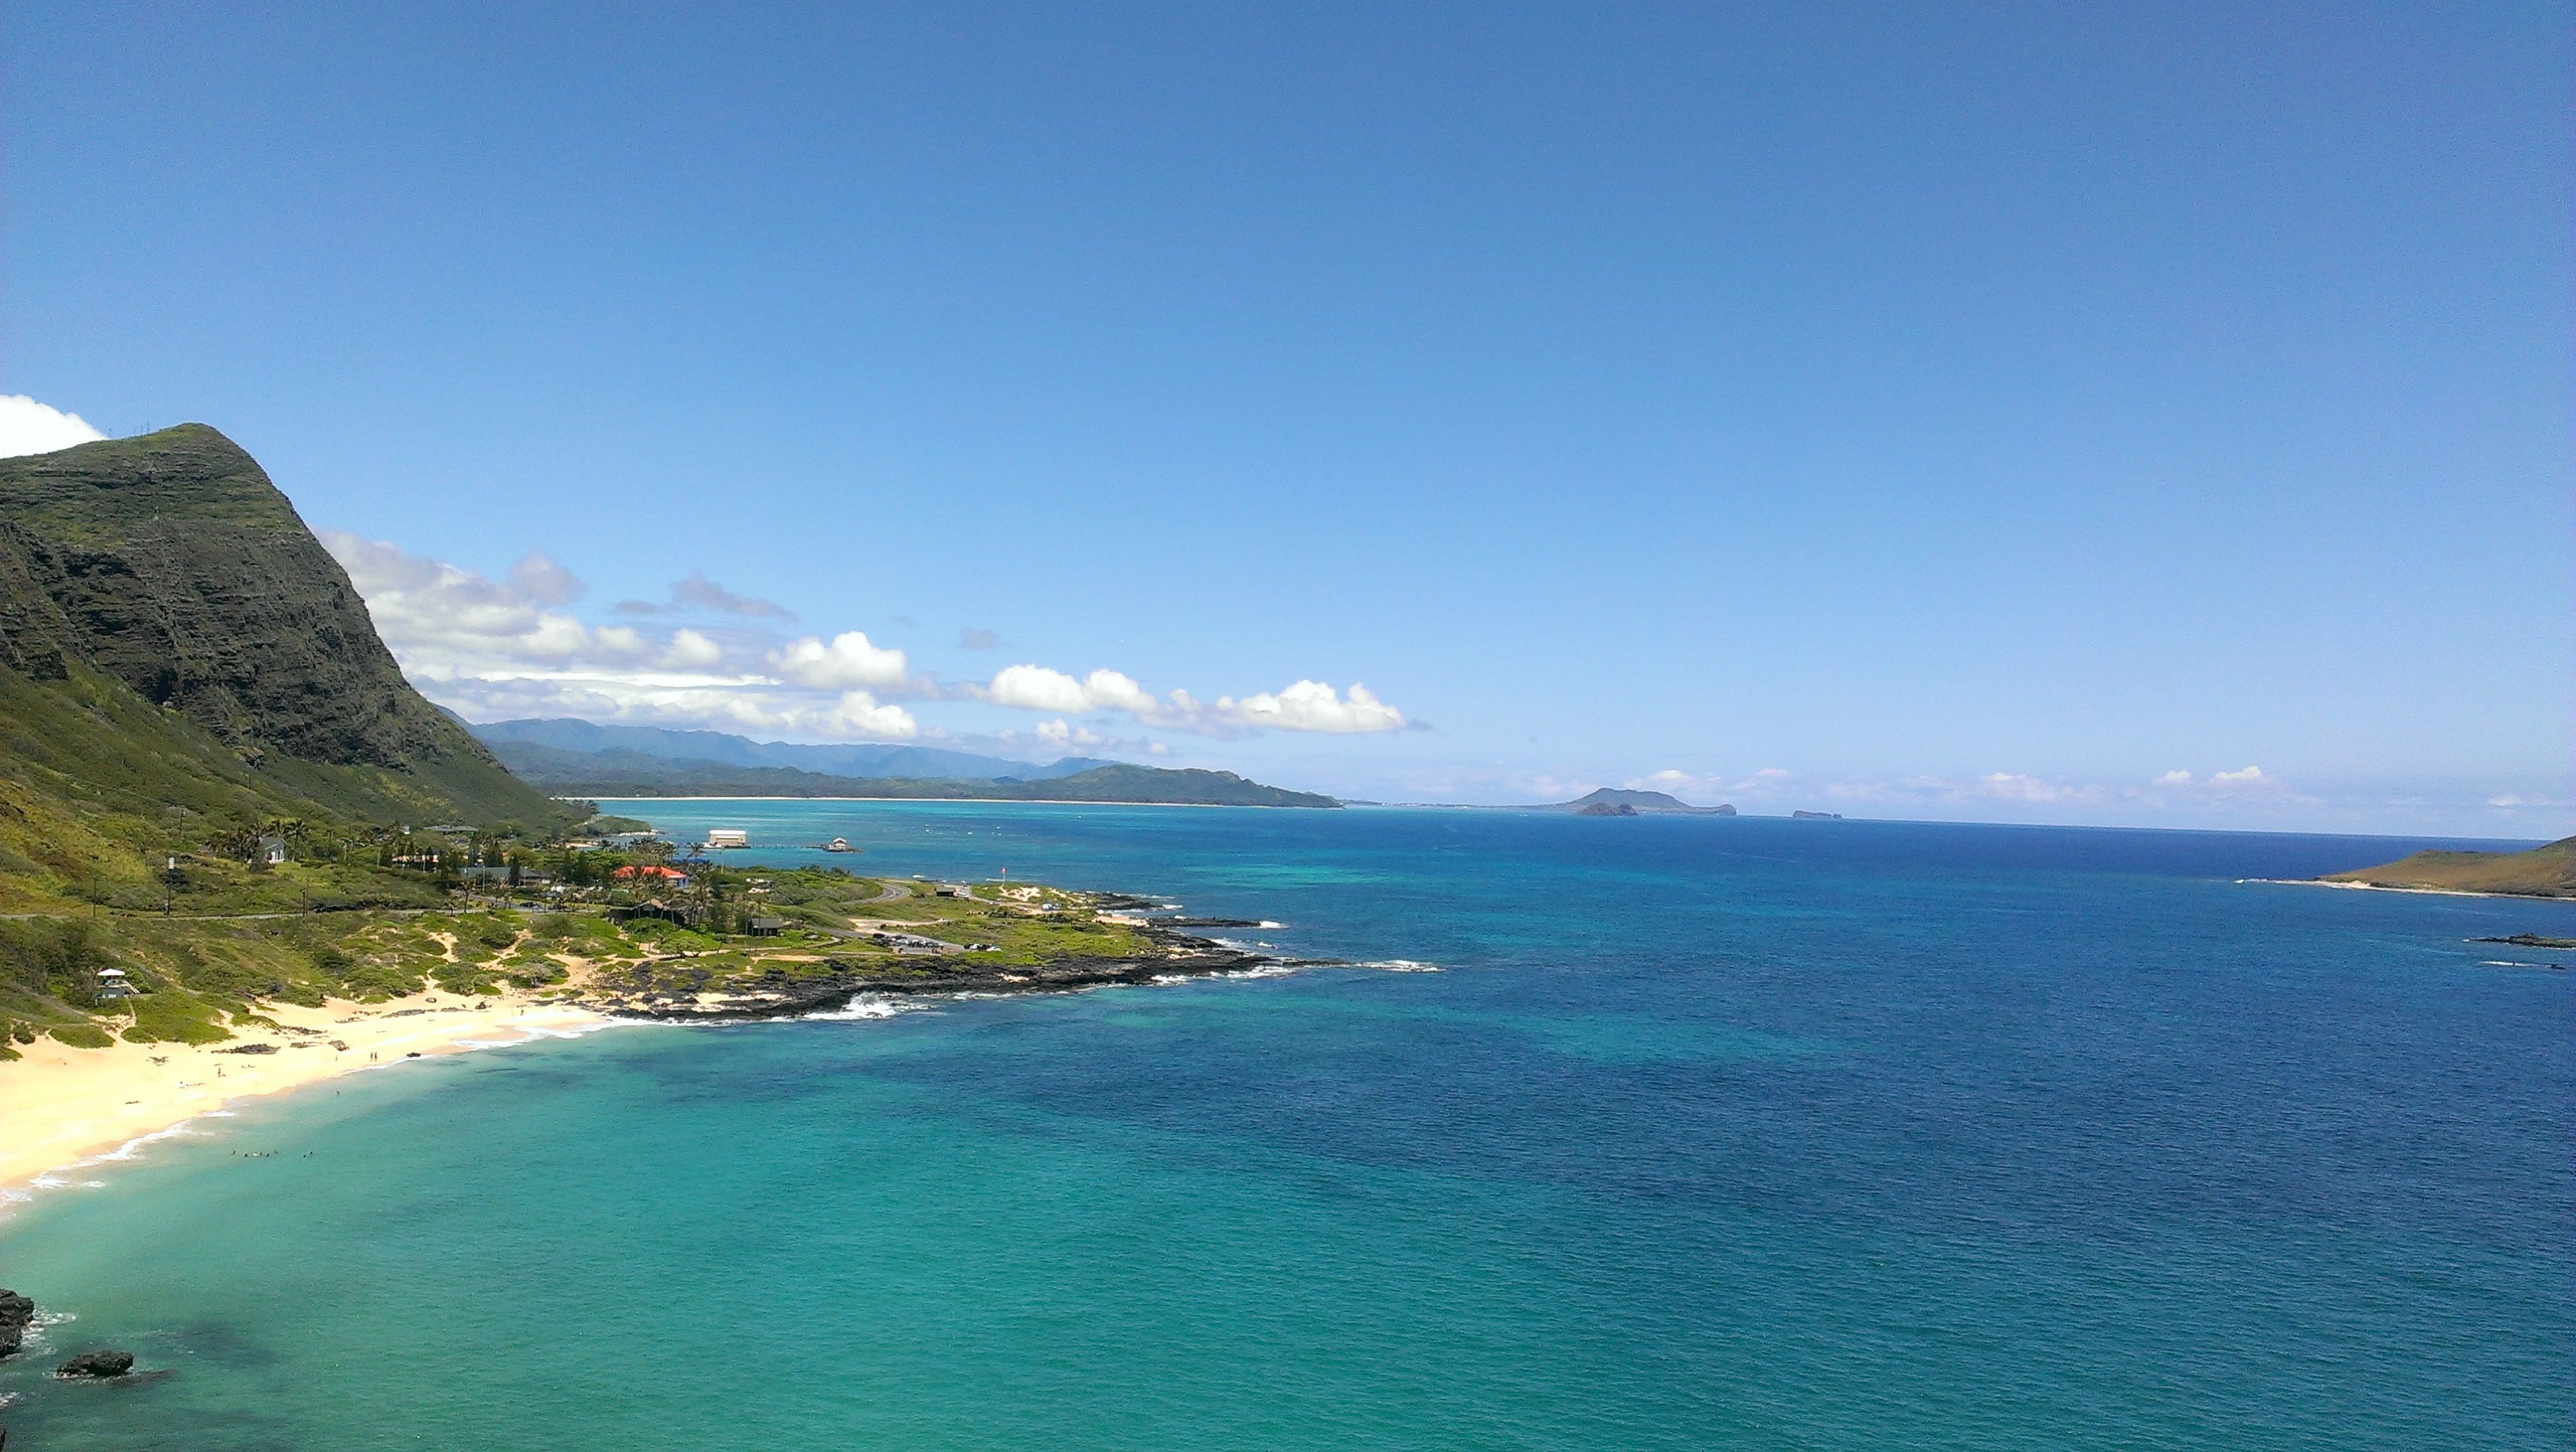 Blue Skies and I like warm sun on your back. loves calling Hawaii home. <3